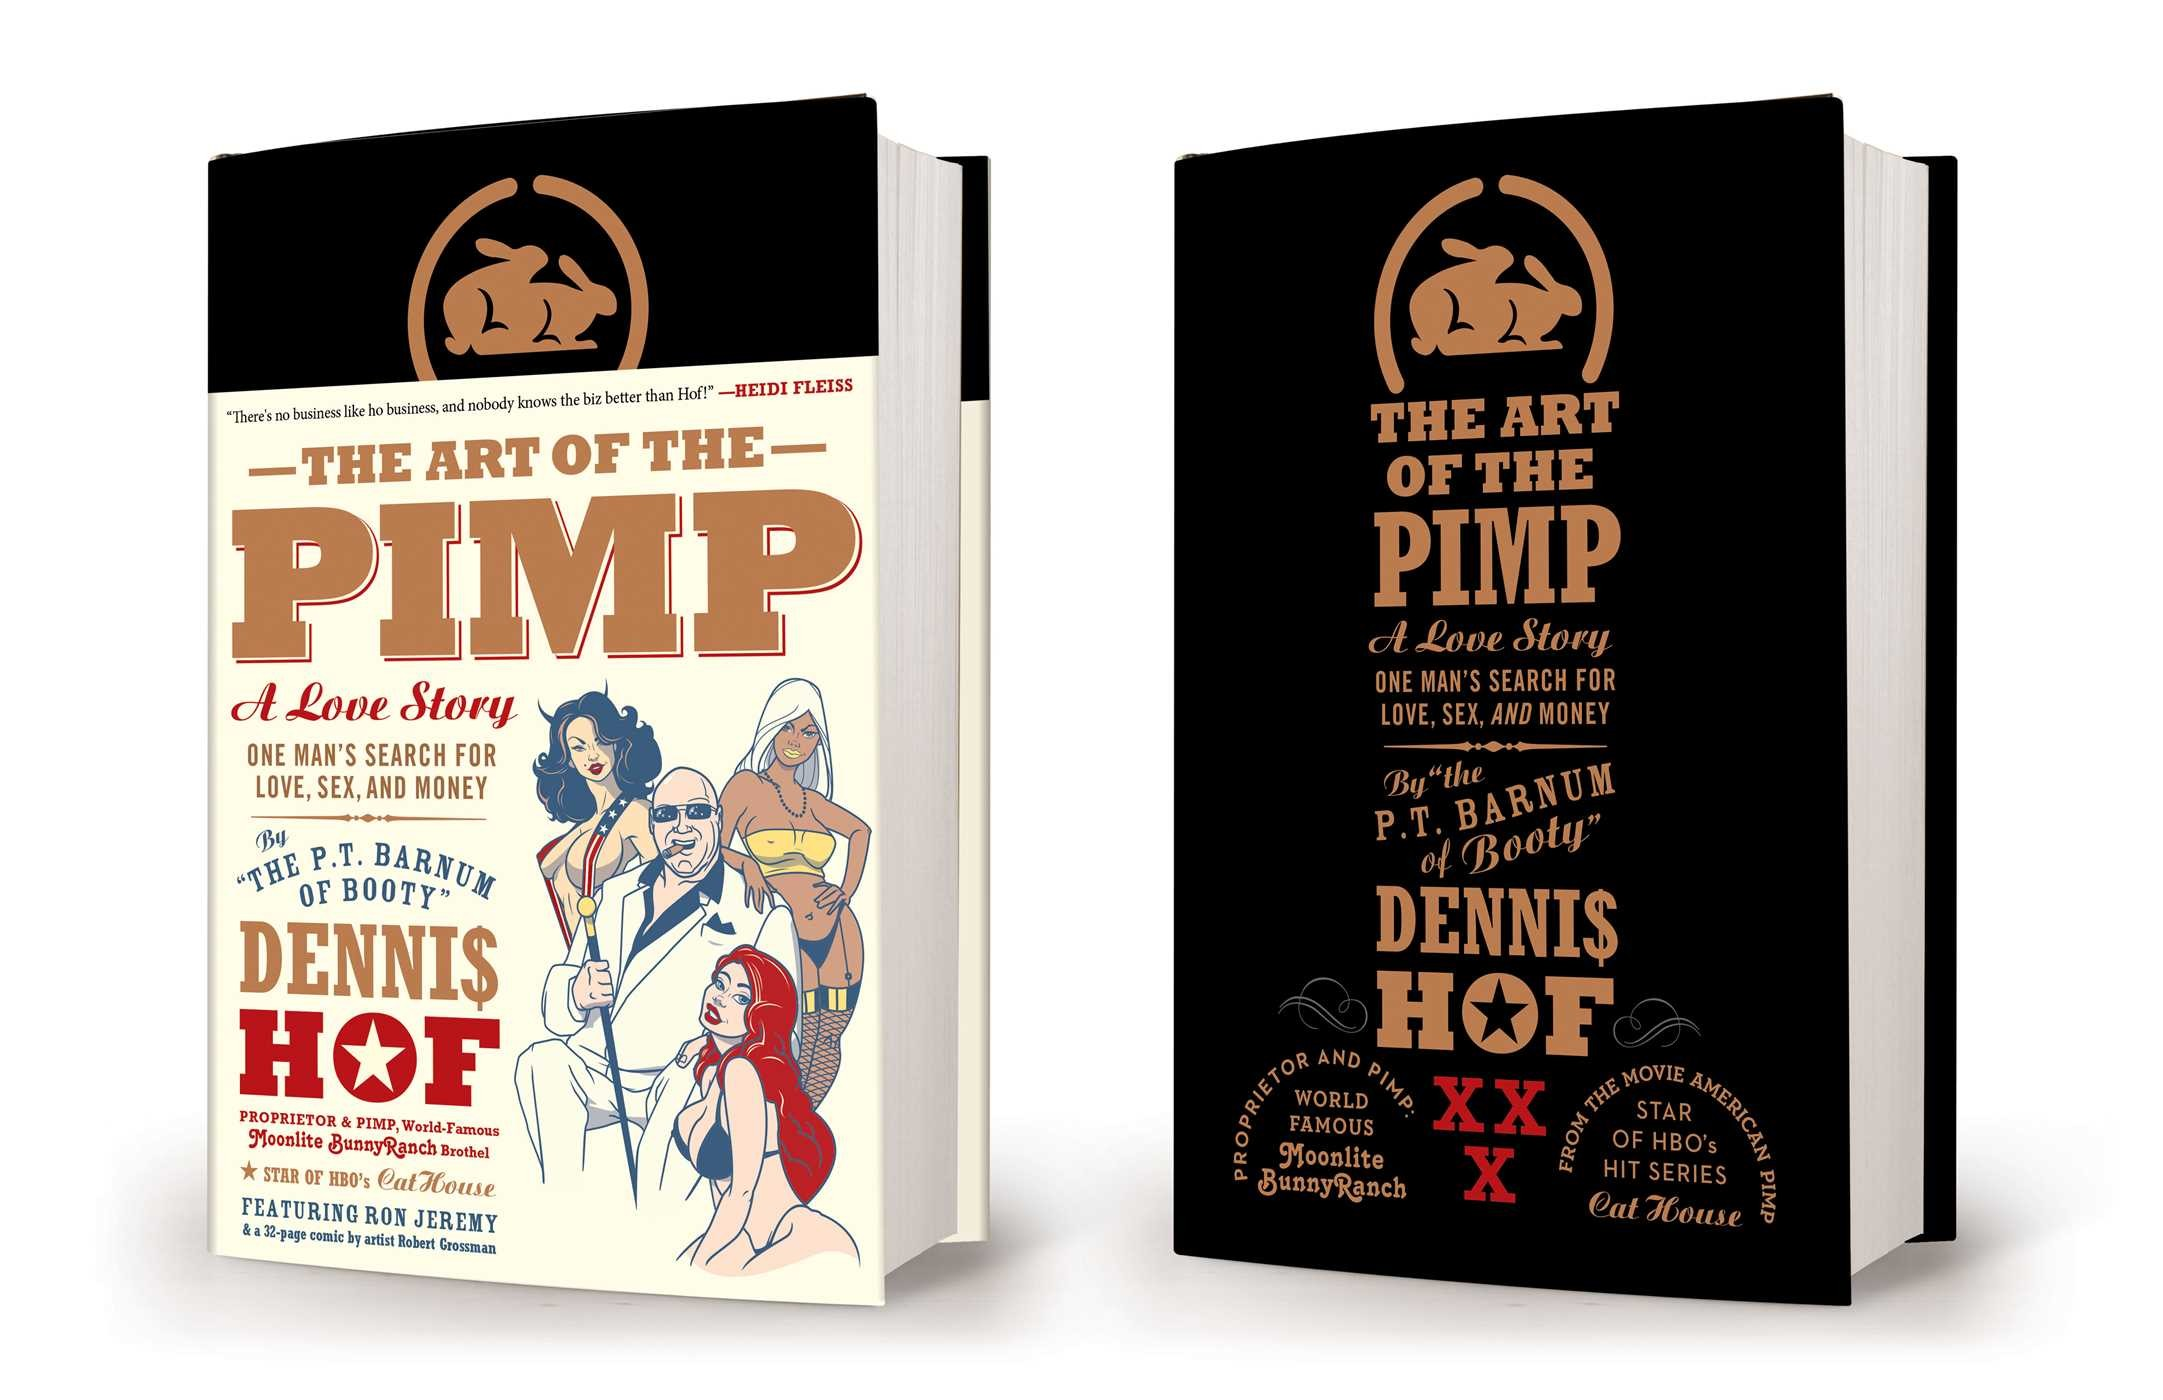 The art of the pimp 9781941393277.in01